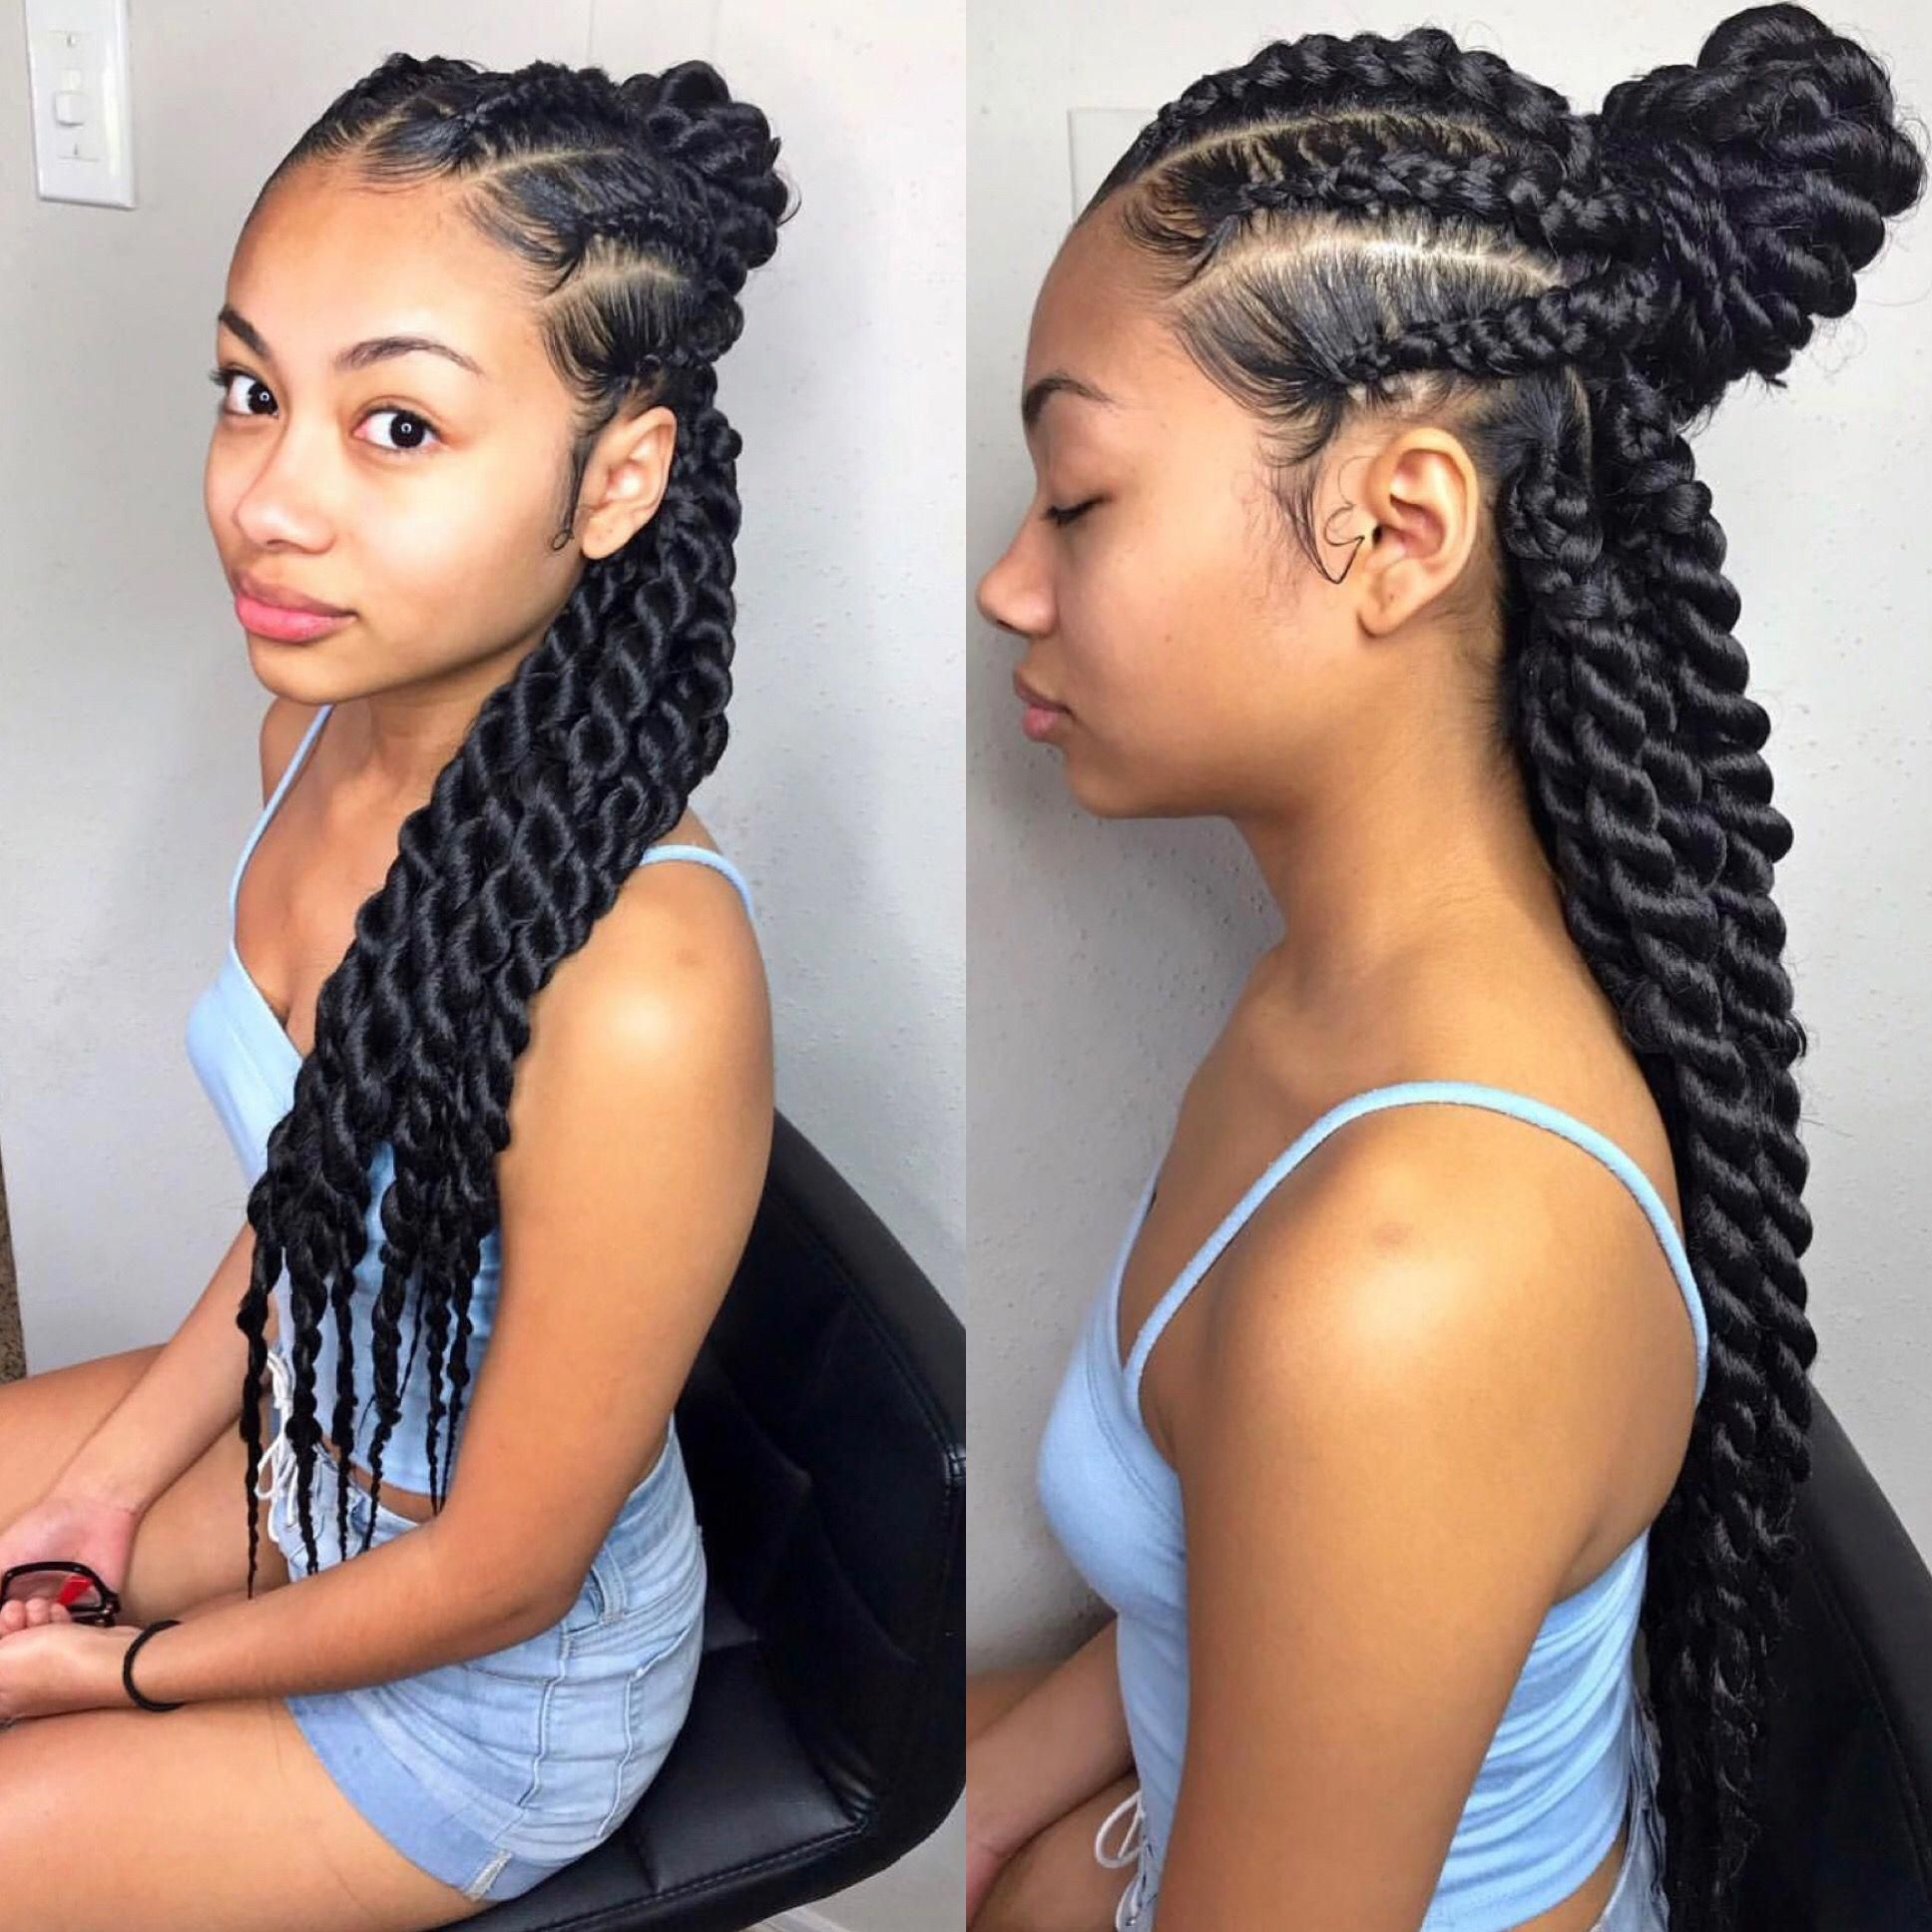 Half Up Half Down Twists By Trapprinzess On Ig Weddinghairstyles Half Braided Hairstyles Natural Hair Styles Cool Braid Hairstyles